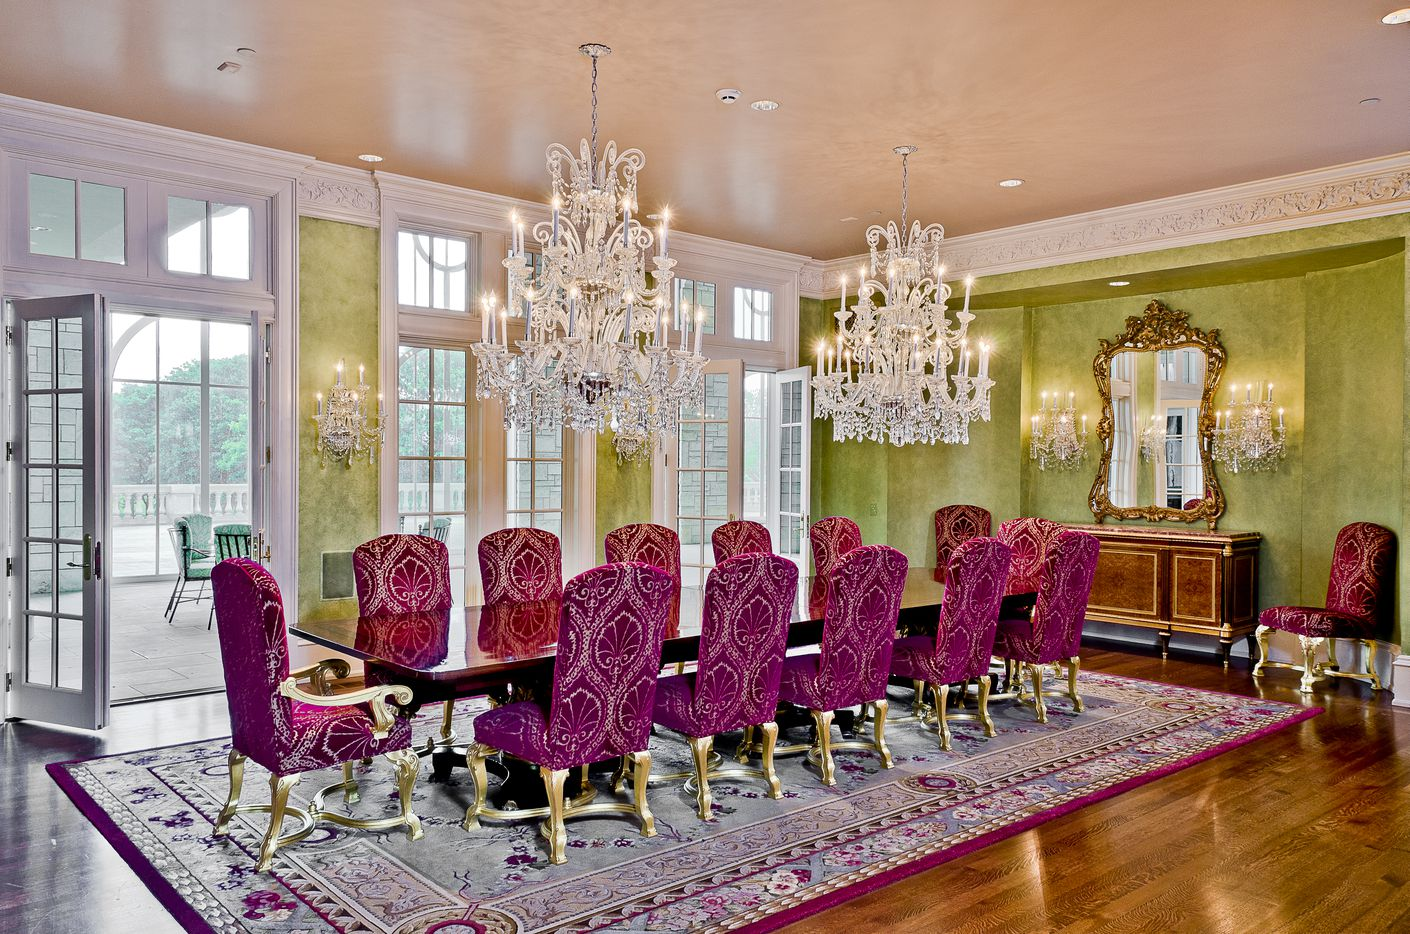 The dining room in the Champ D'Or mansion.